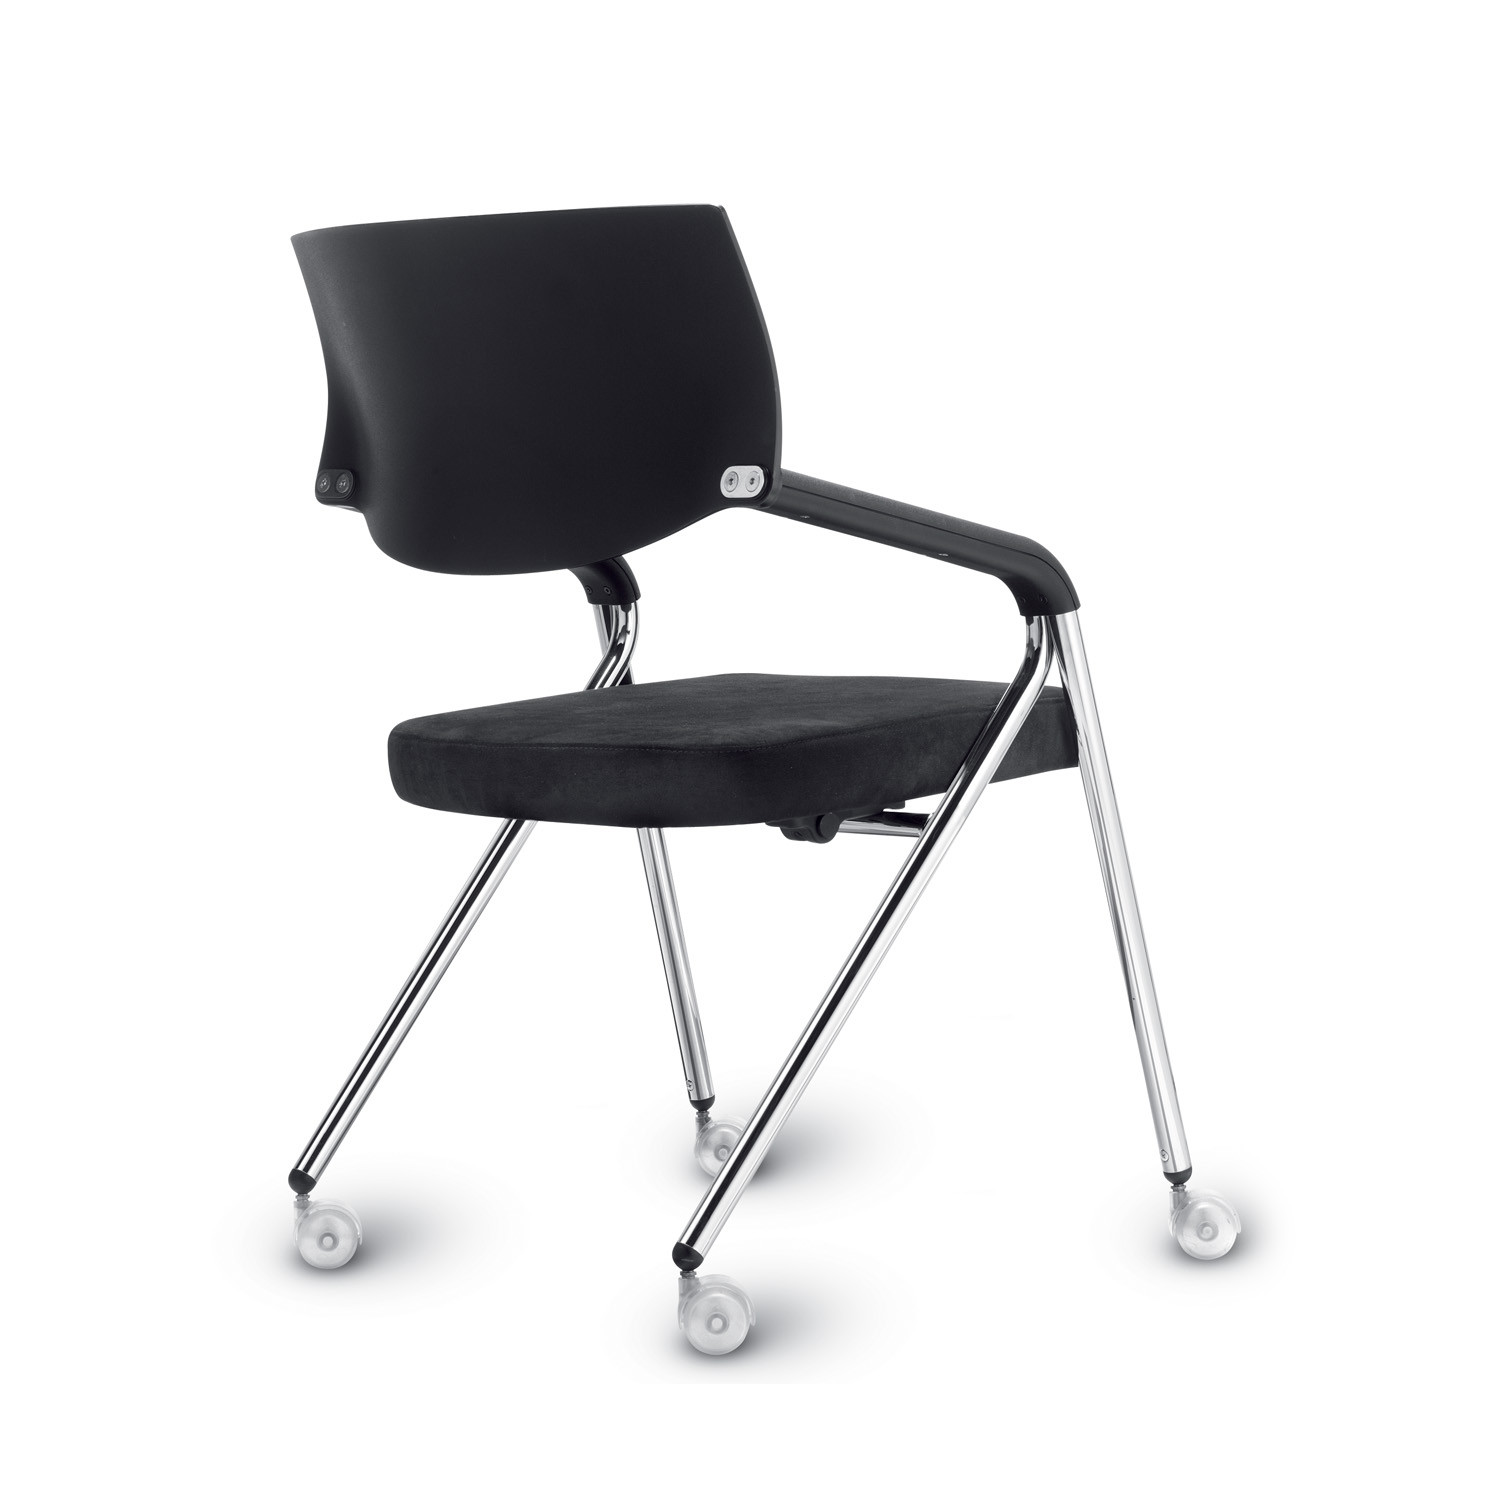 Join Me Chair